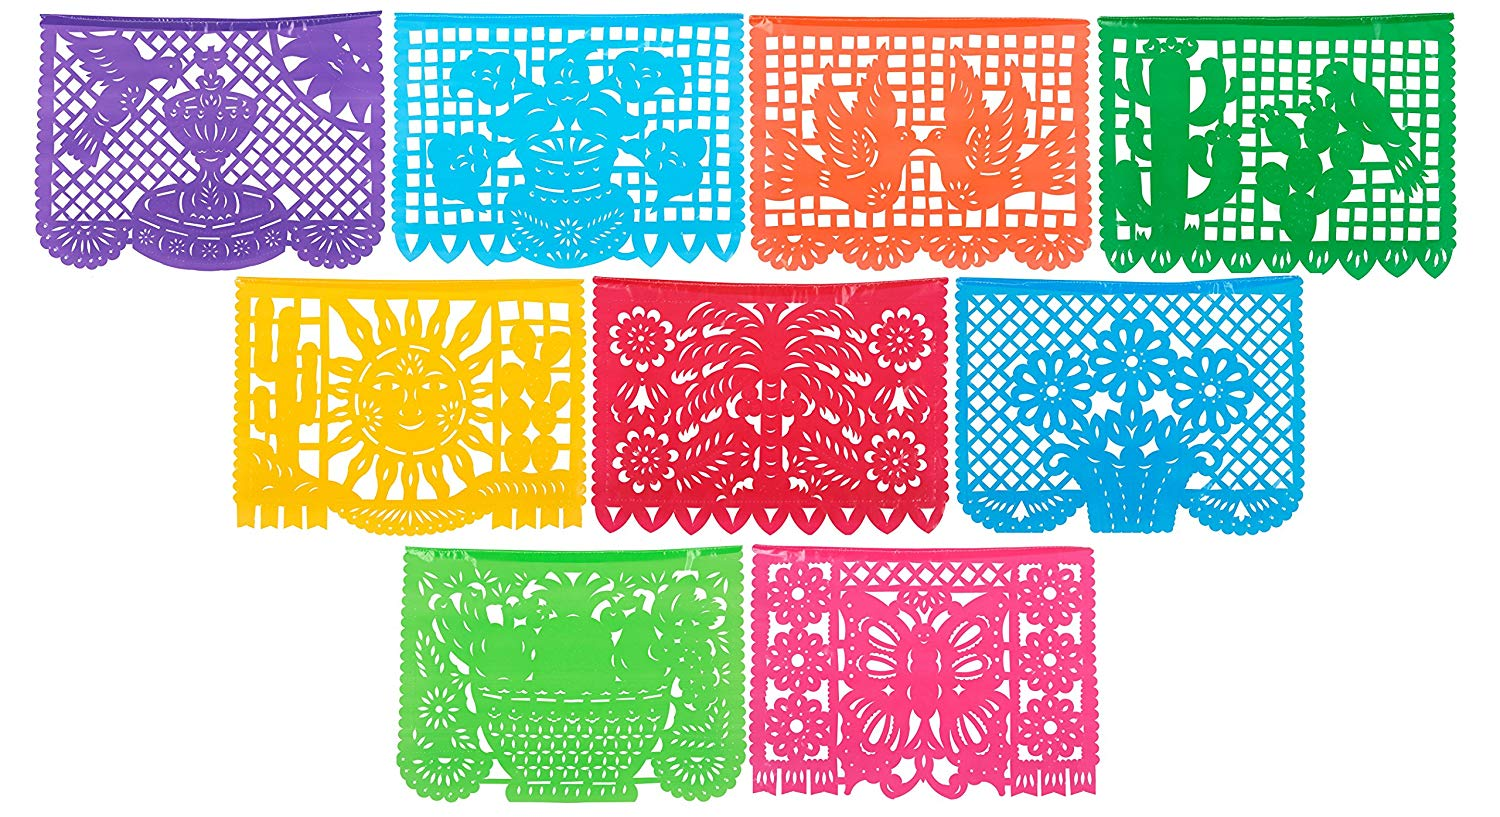 Papel picado clipart numbers black and white wedding clip art library library Paper Full of Wishes Festival Mexicano Large Plastic Papel Picado Banner, 9  Multi-Colored Panels 15 feet Long clip art library library